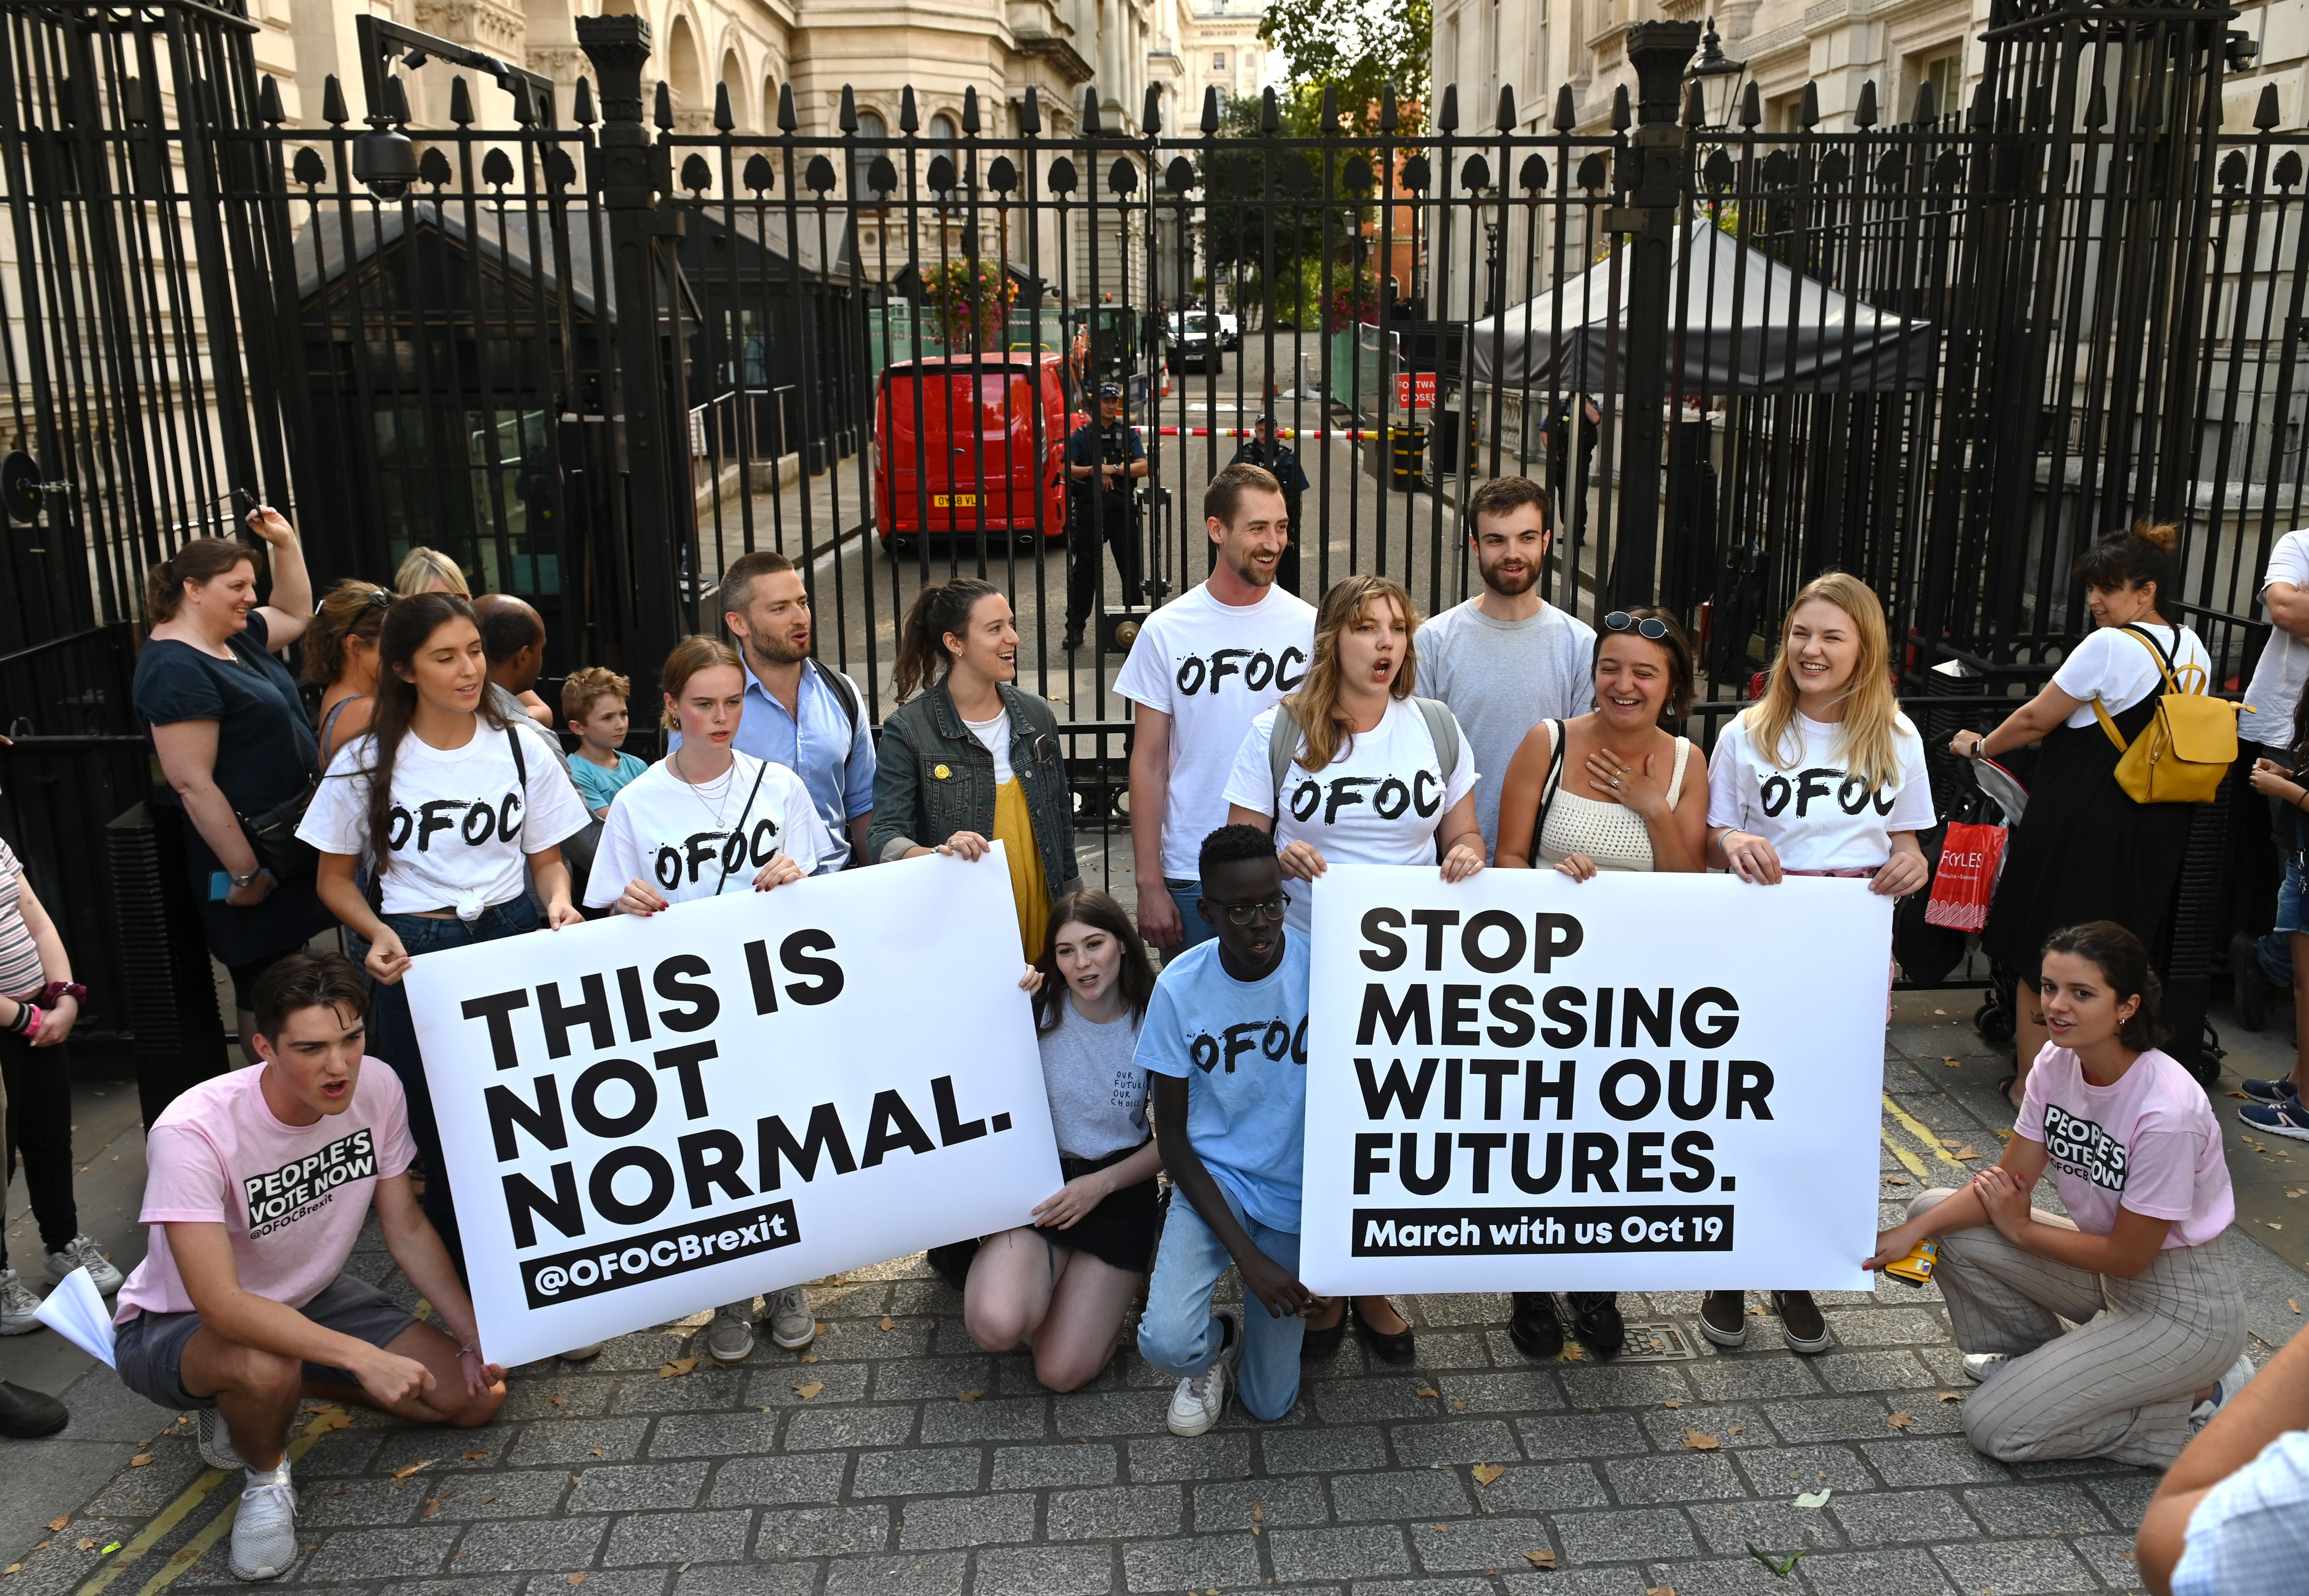 Members of the anti-Briexit Our Future, Our Choice (OFOC) a youth movement supporting a People's Vote on the Brexit deal, demonstrate outside the gates to Downing Street in central London on August 28, 2019. - British Prime Minister Boris Johnson announced Wednesday that the suspension of parliament would be extended until October 14 -- just two weeks before the UK is set to leave the EU -- enraging anti-Brexit MPs. MPs will return to London later than in recent years, giving pro-EU lawmakers less time than expected to thwart Johnson's Brexit plans before Britain is due to leave the European Union on October 31. (Photo by DANIEL LEAL-OLIVAS / AFP)        (Photo credit should read DANIEL LEAL-OLIVAS/AFP/Getty Images)